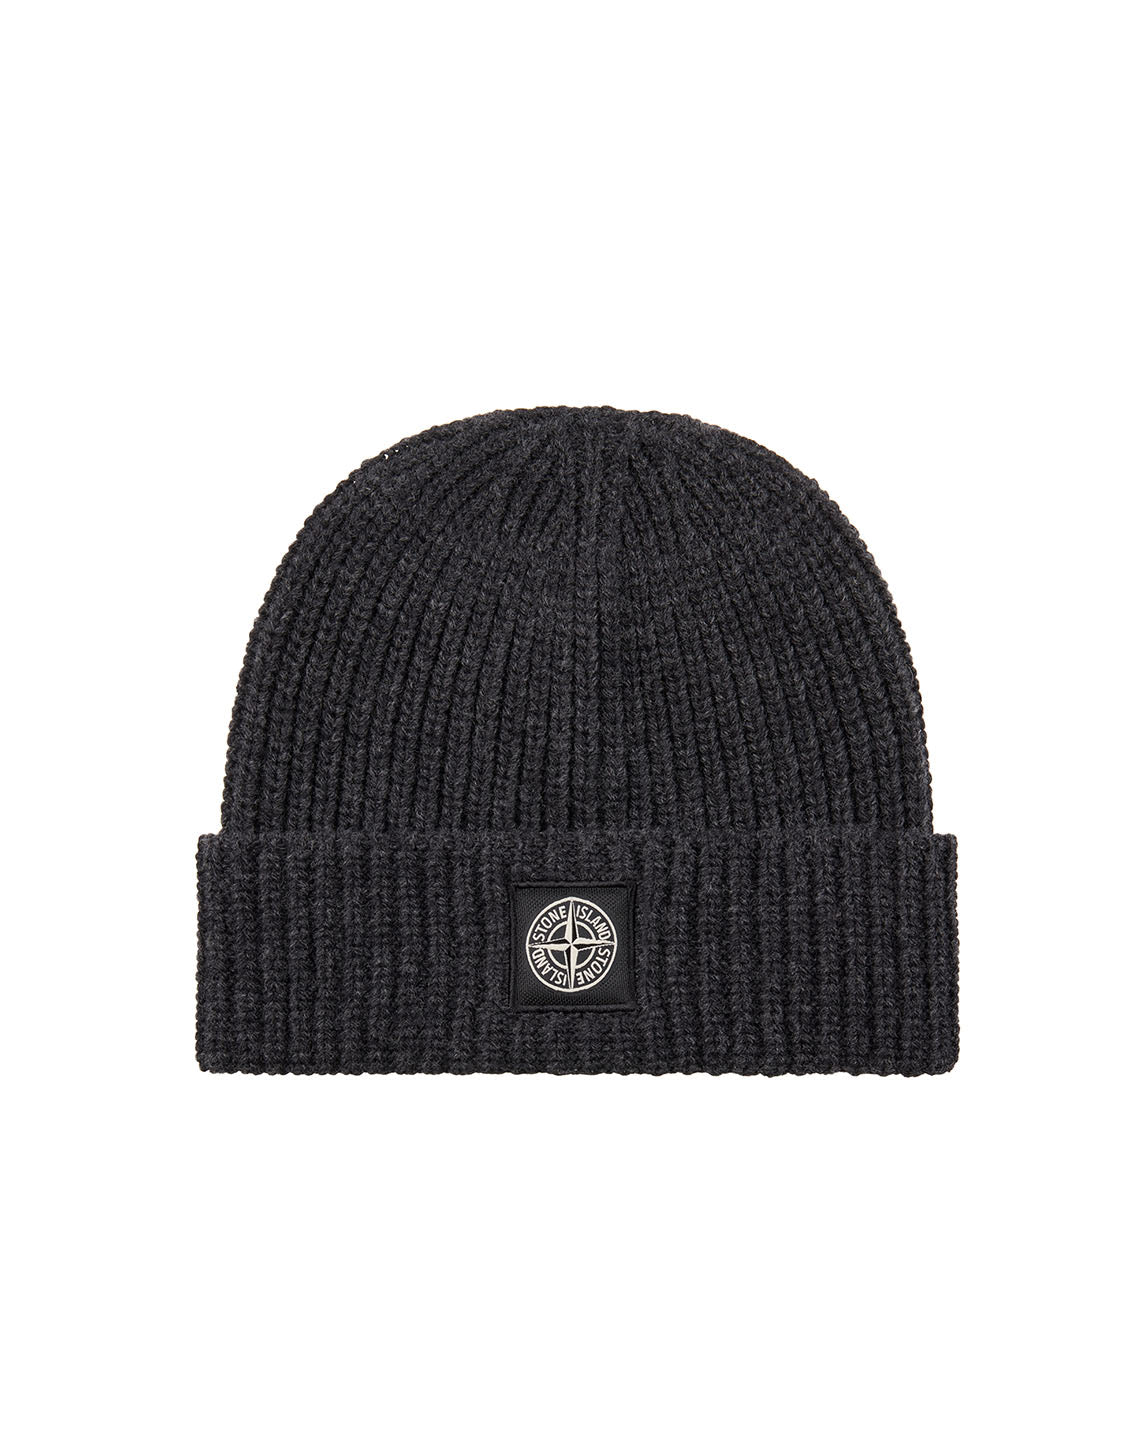 N10B5 Ribbed Wool Hat in Charcoal